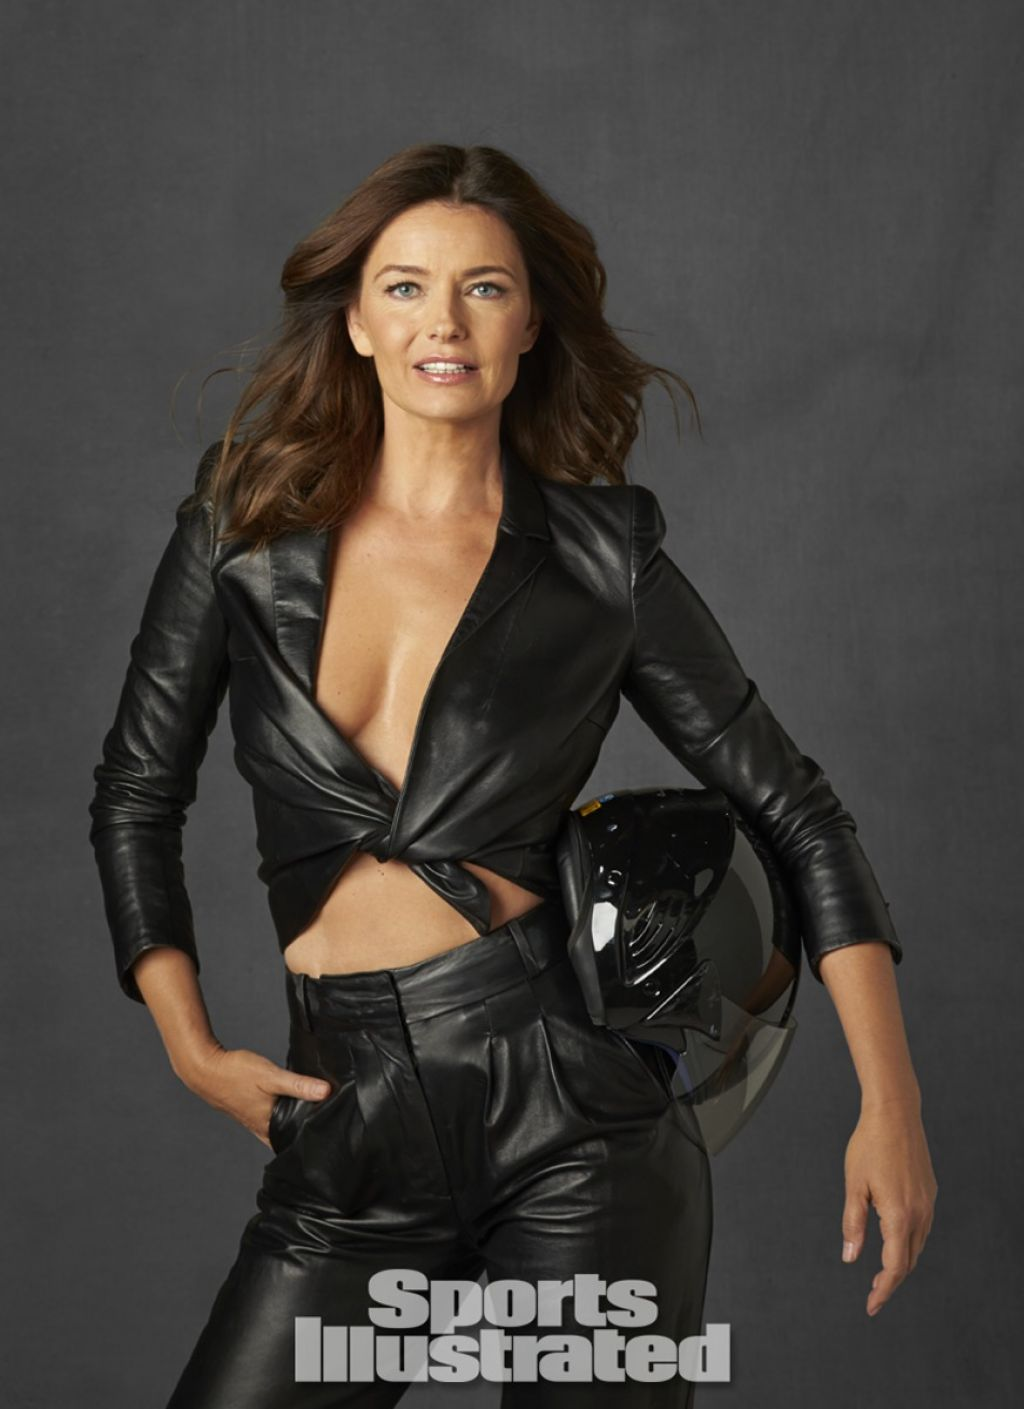 Paulina Porizkova - Sports Illustrated Swimsuit Legends 2014